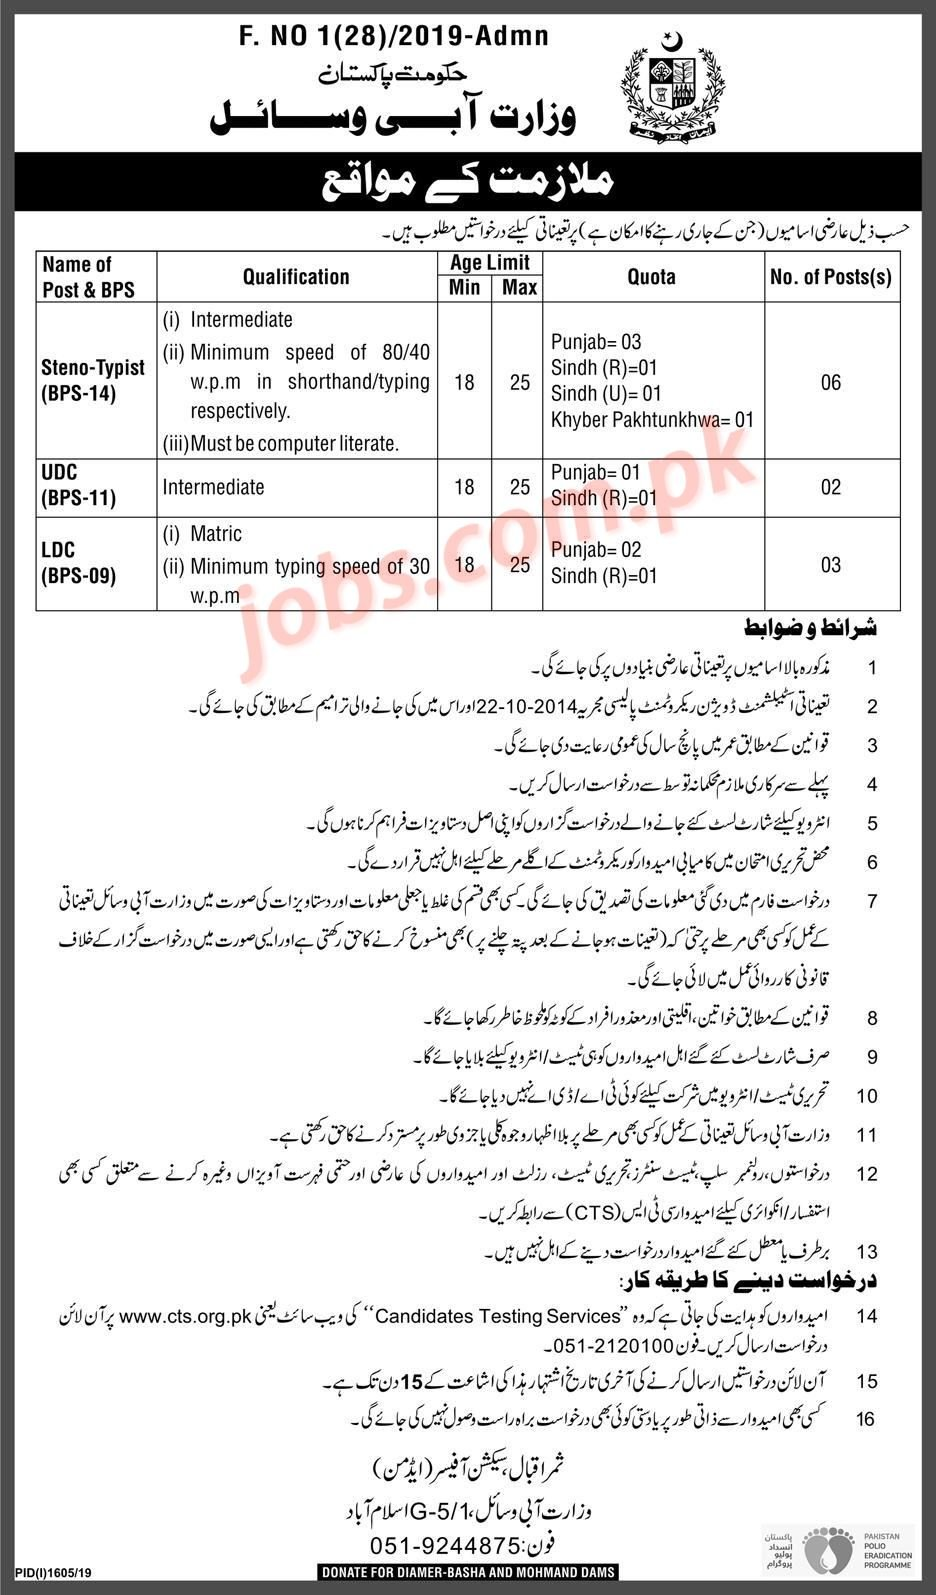 Ministry of Water Resources Pakistan Jobs 2019 for 11